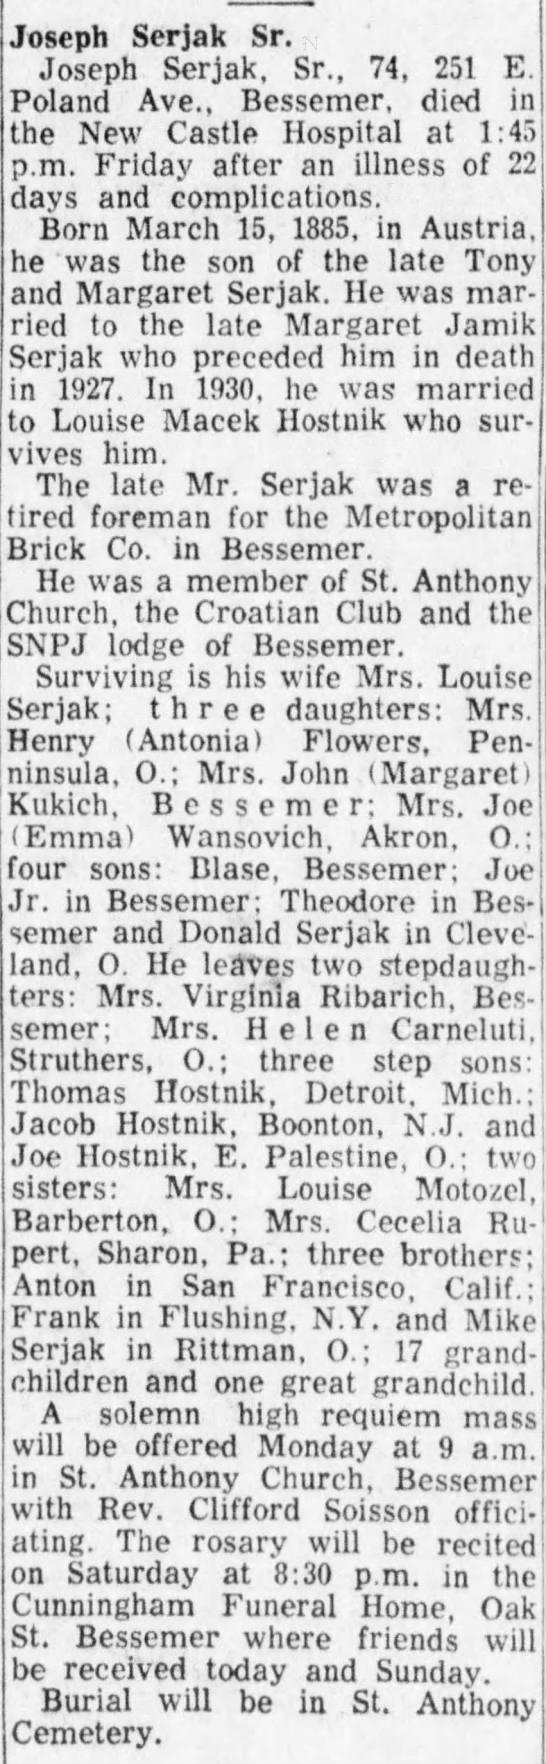 Joseph Serjak